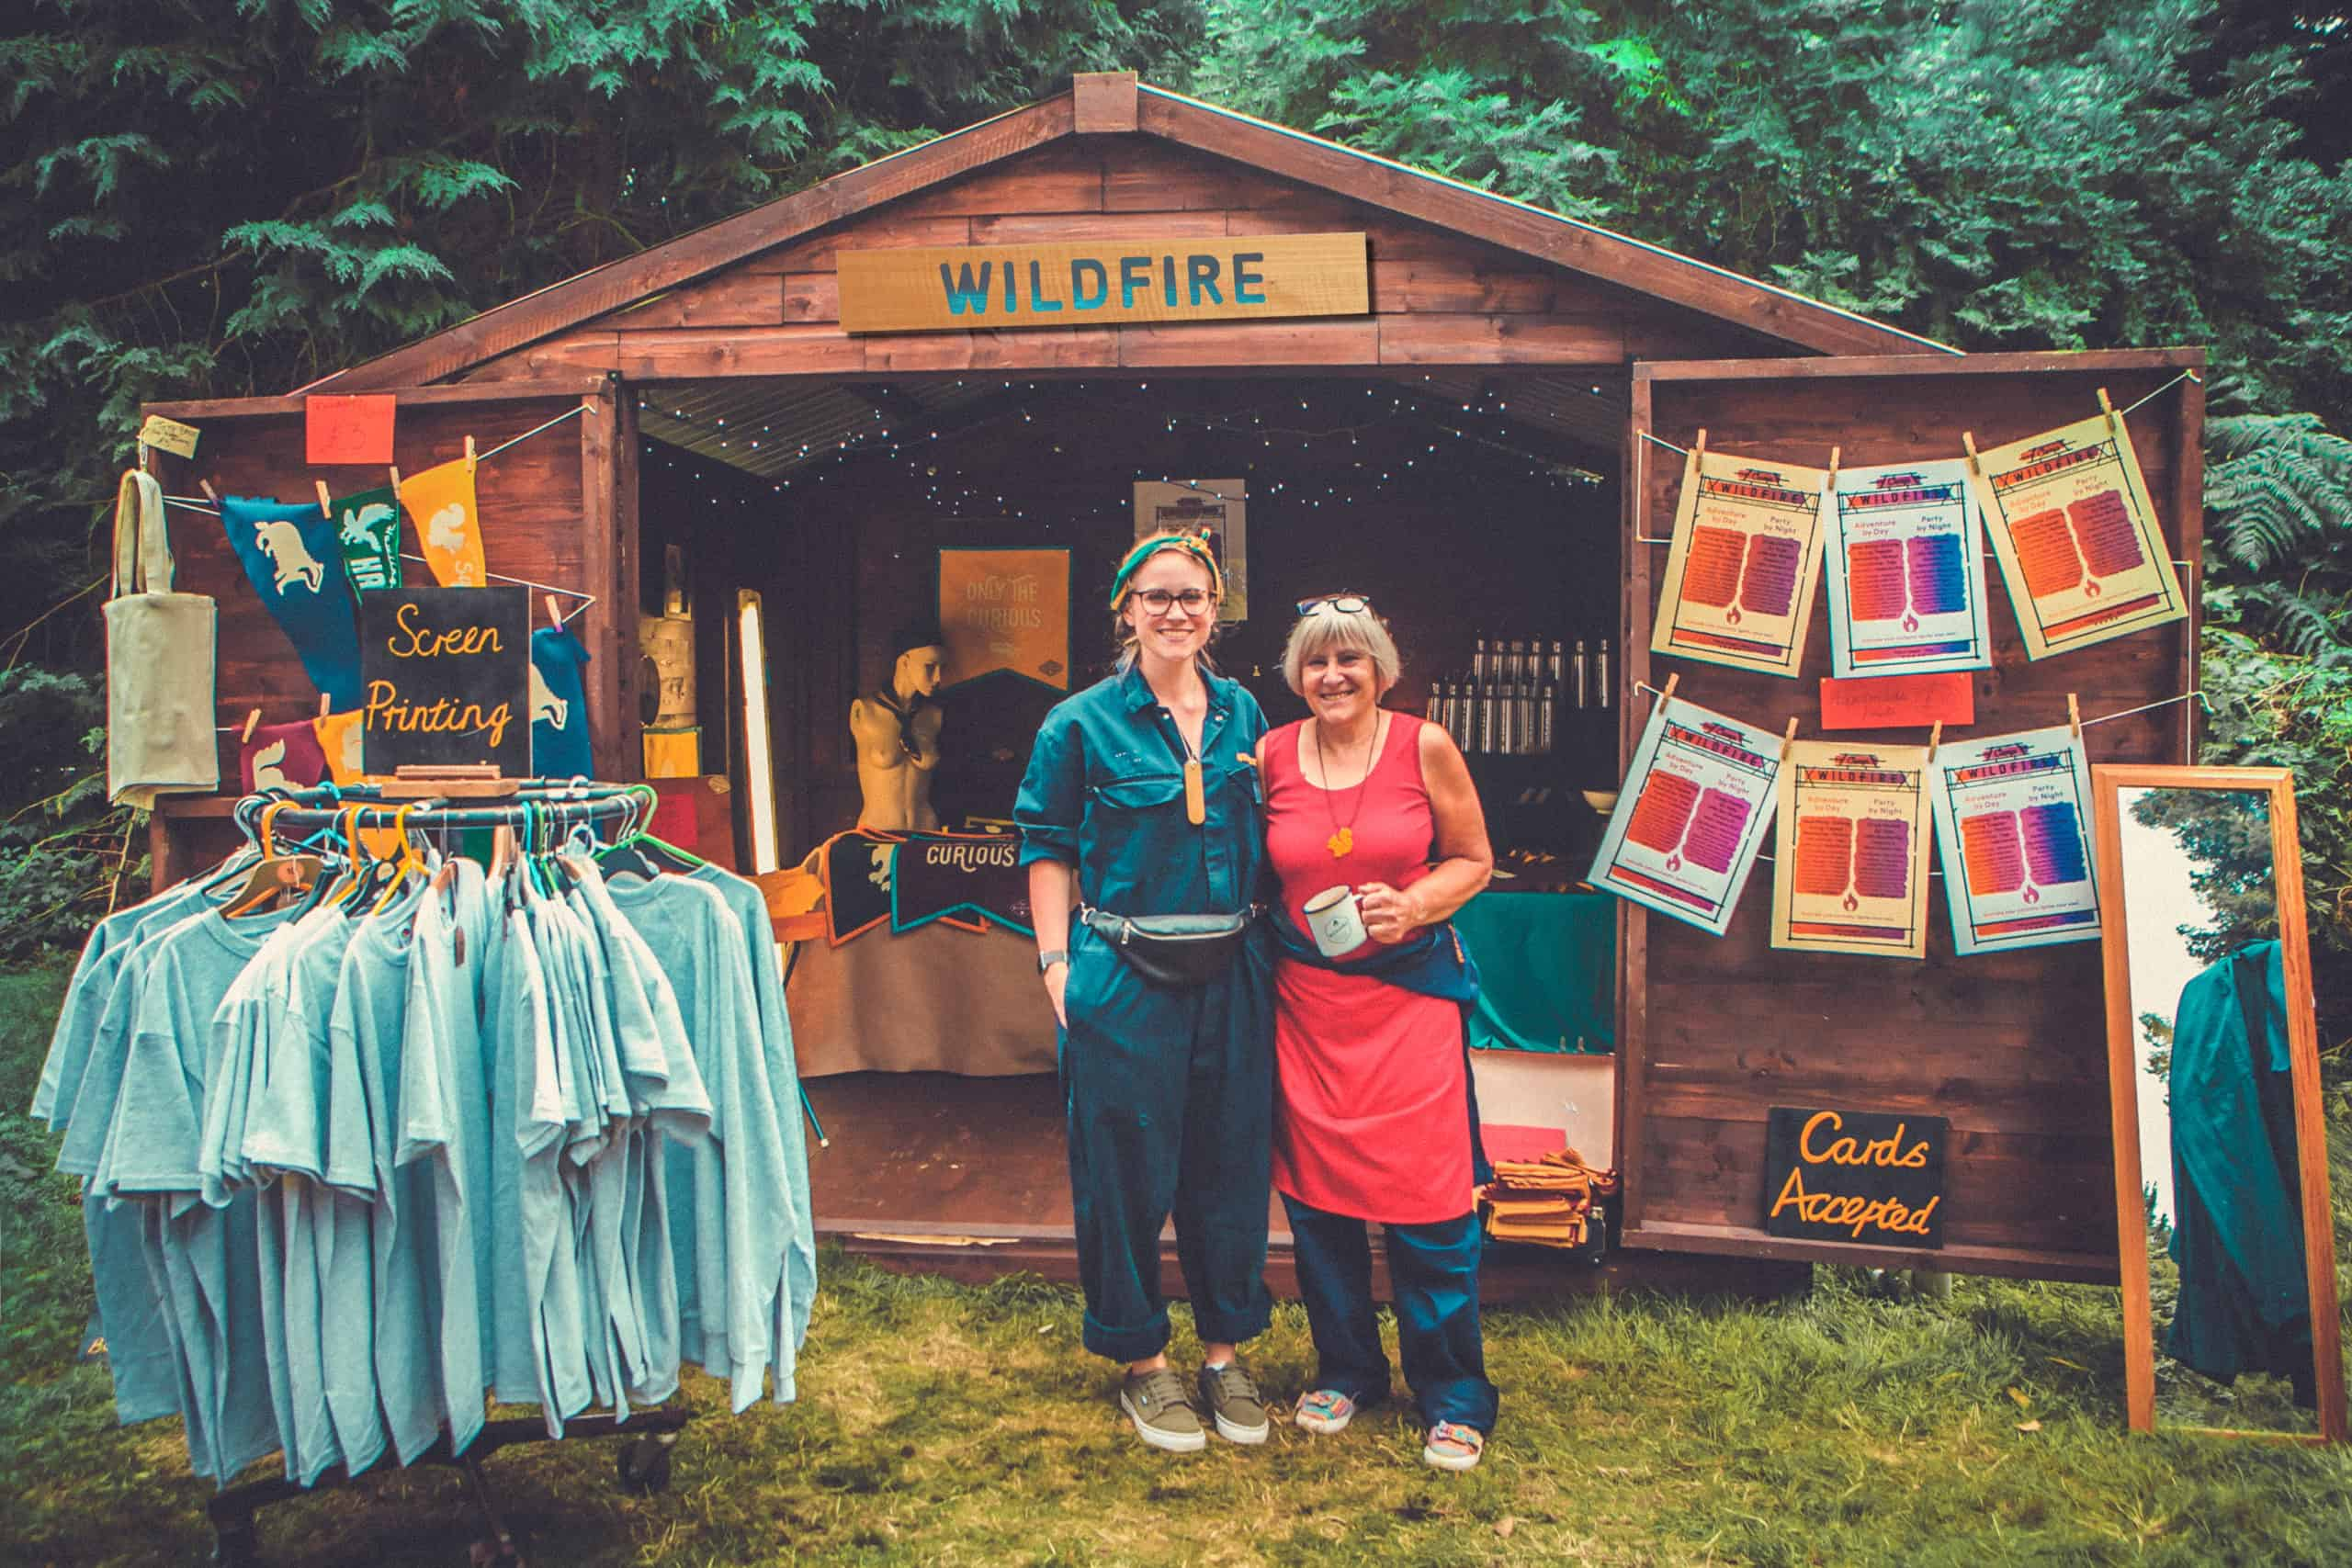 The Camp Wildfire merchandise shop. A summer weekend break in a forest near London and Kent. An outdoor woodland retreat featuring adventure activities, live music, DJs, parties and camping. Half summer adventure activity camp, half music festival, for adults only.